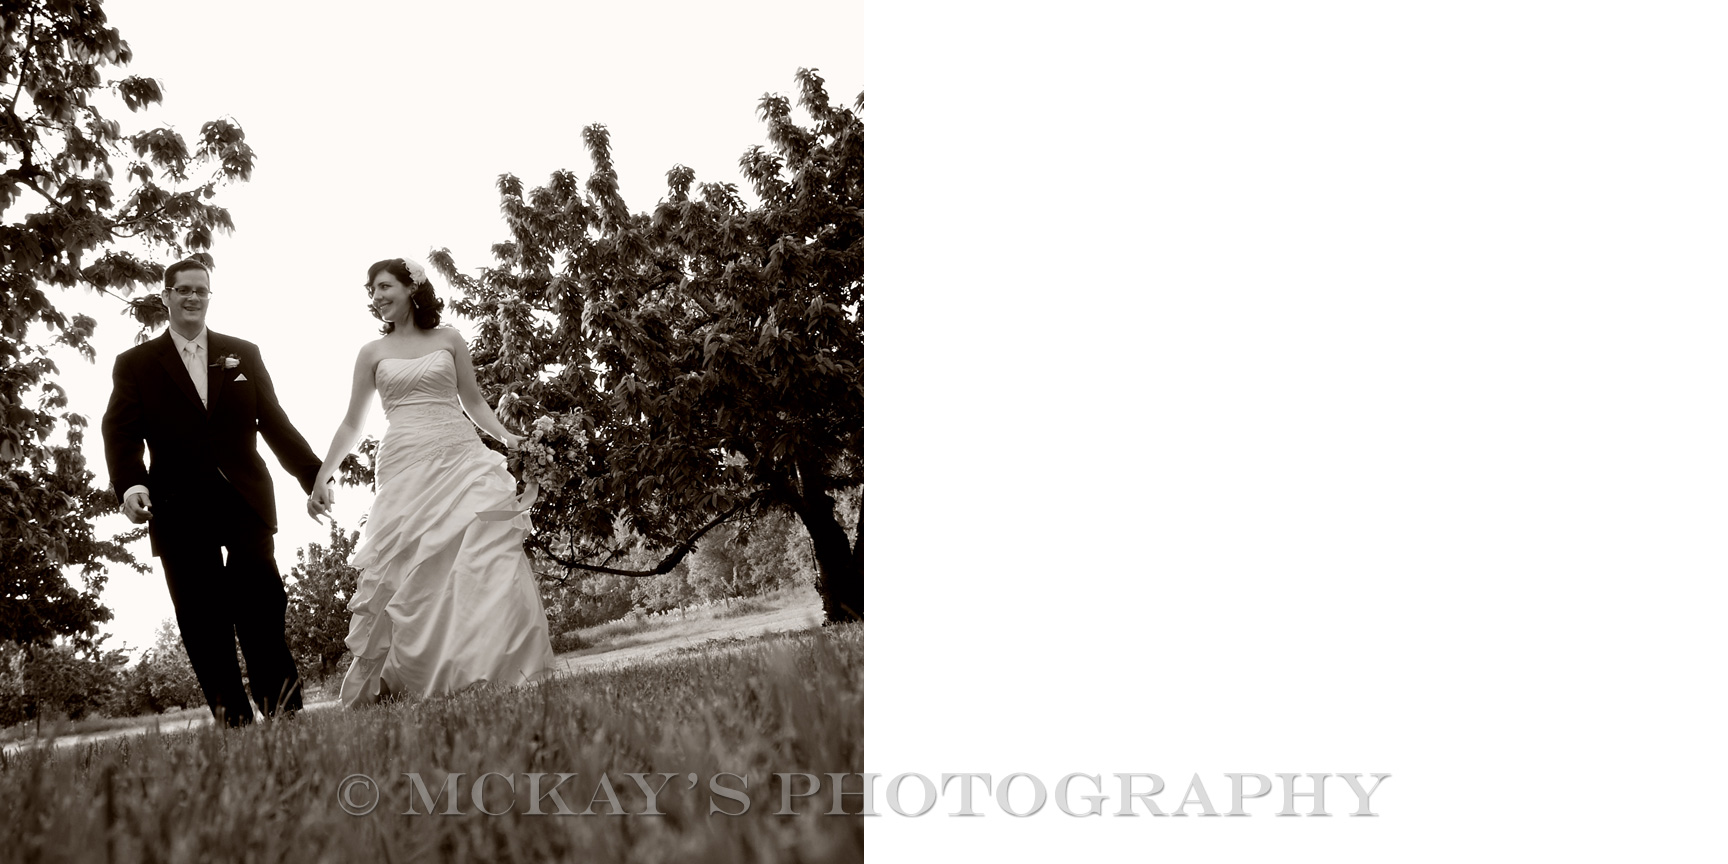 Top Buffalo and Rochester Wedding Photographer creates eco-friendly wedding albums for rustic barn weddings in Upstate NY at Hurd Orchards fruit farm